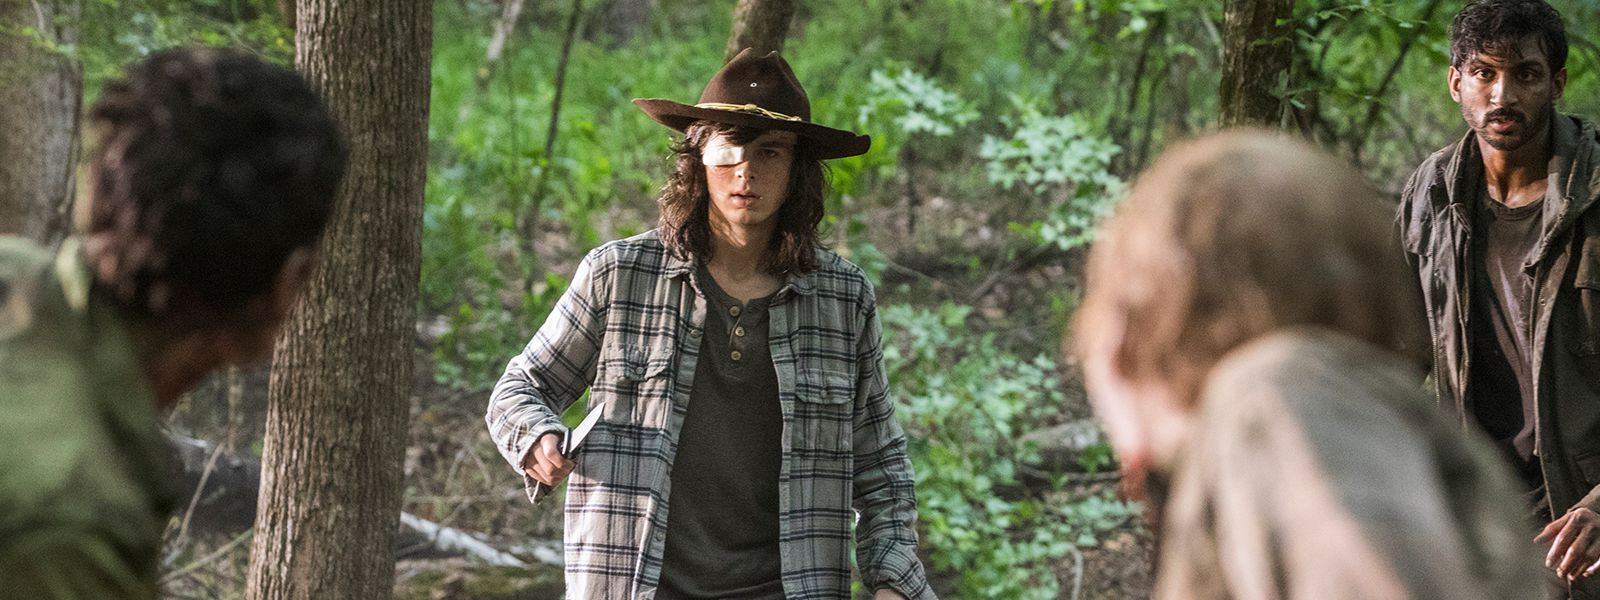 the-walking-dead-episode-806-carl-riggs-post-800×600